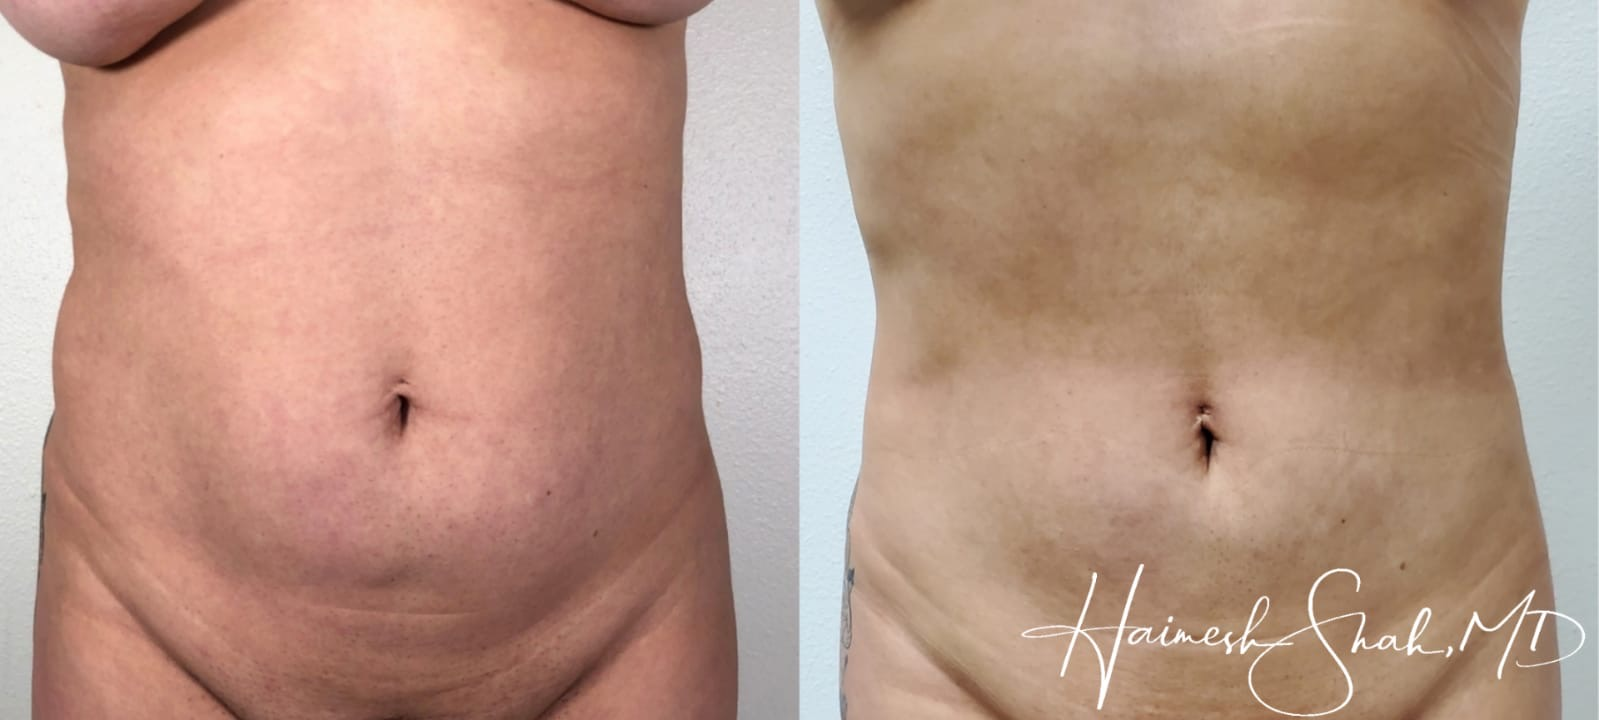 liposuction top treatment surgery in Oxnard